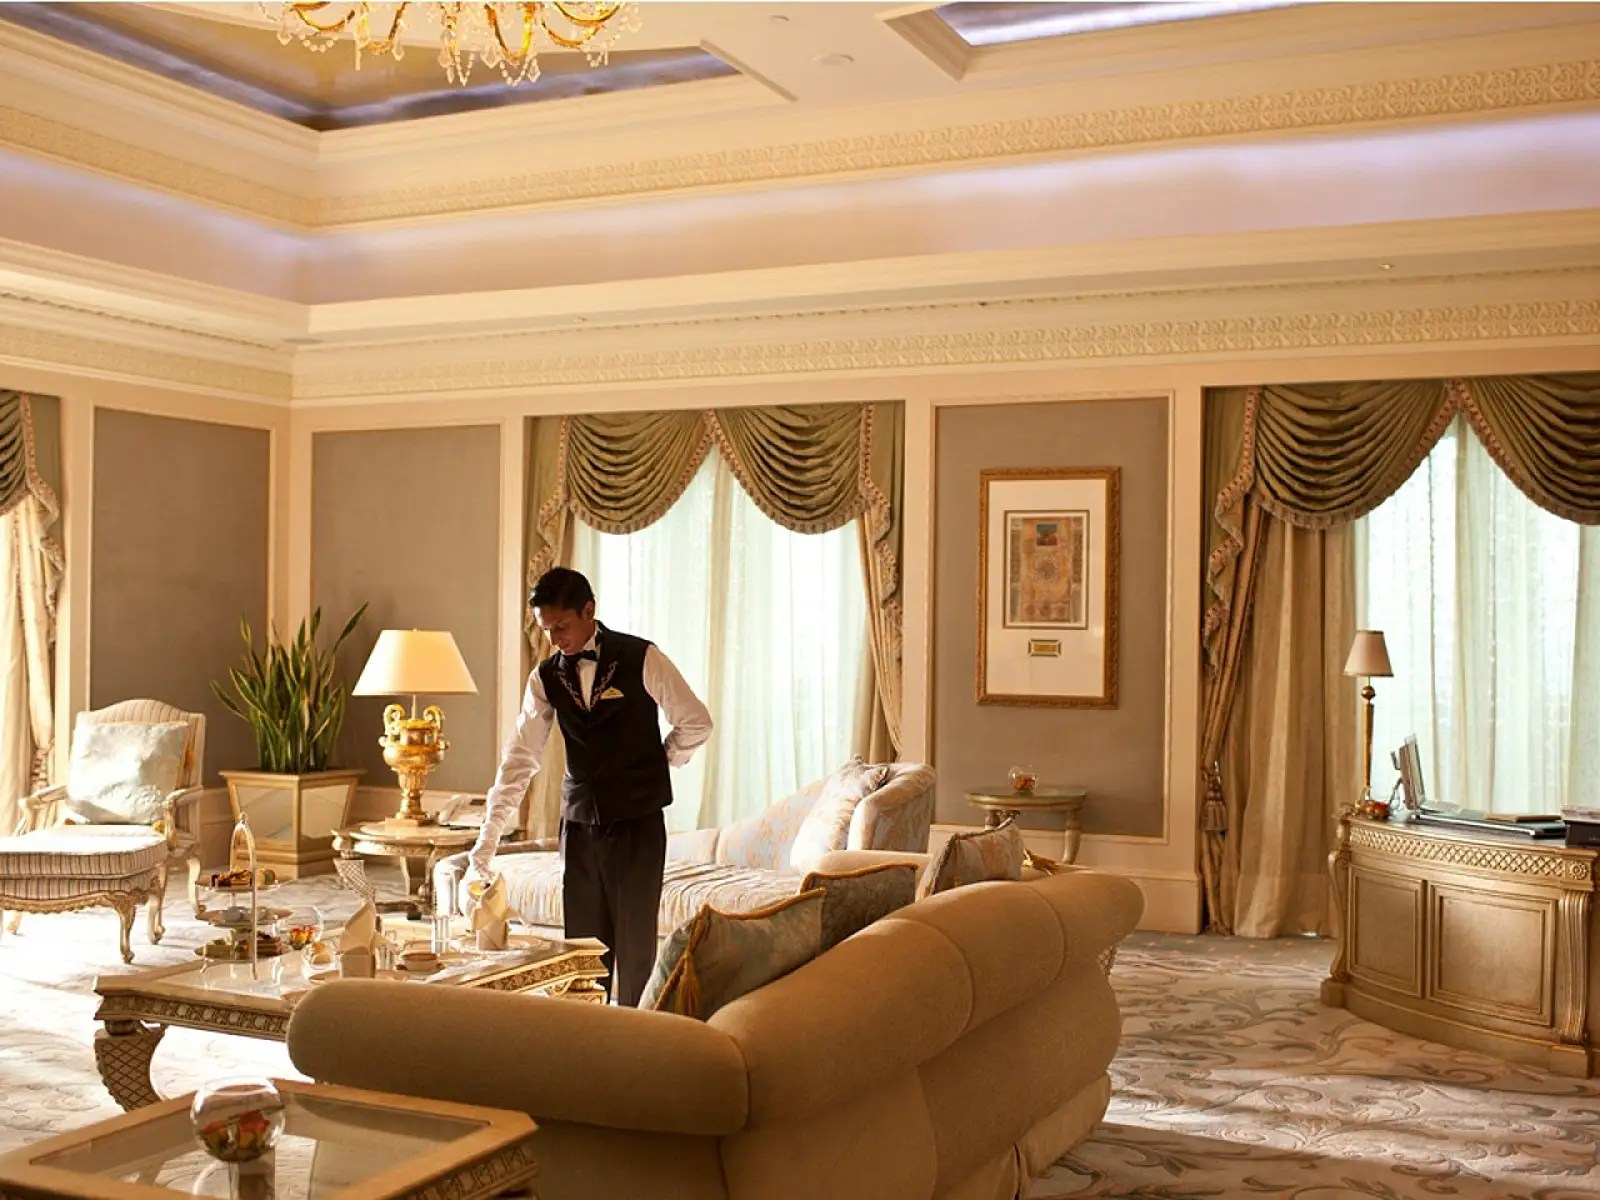 And if you need anything at all, just ask Jeeves. Each suite at the Emirates Palace comes with 24-hour butler service.